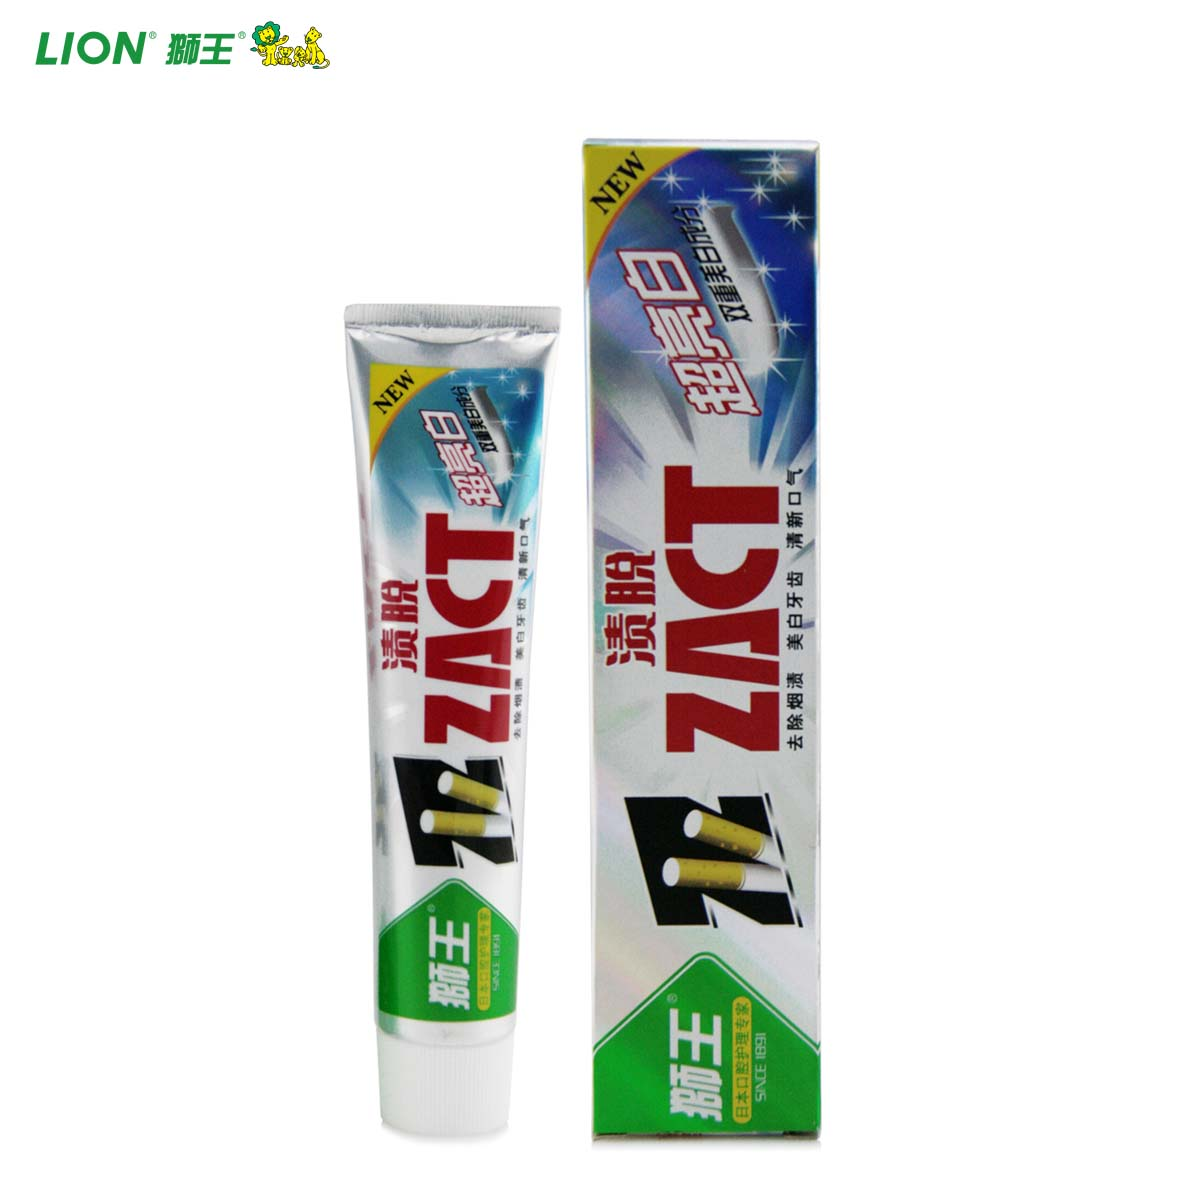 Lion lion zact stains off white 150G smoking white teeth whitening toothpaste to go smoke stains teeth stains